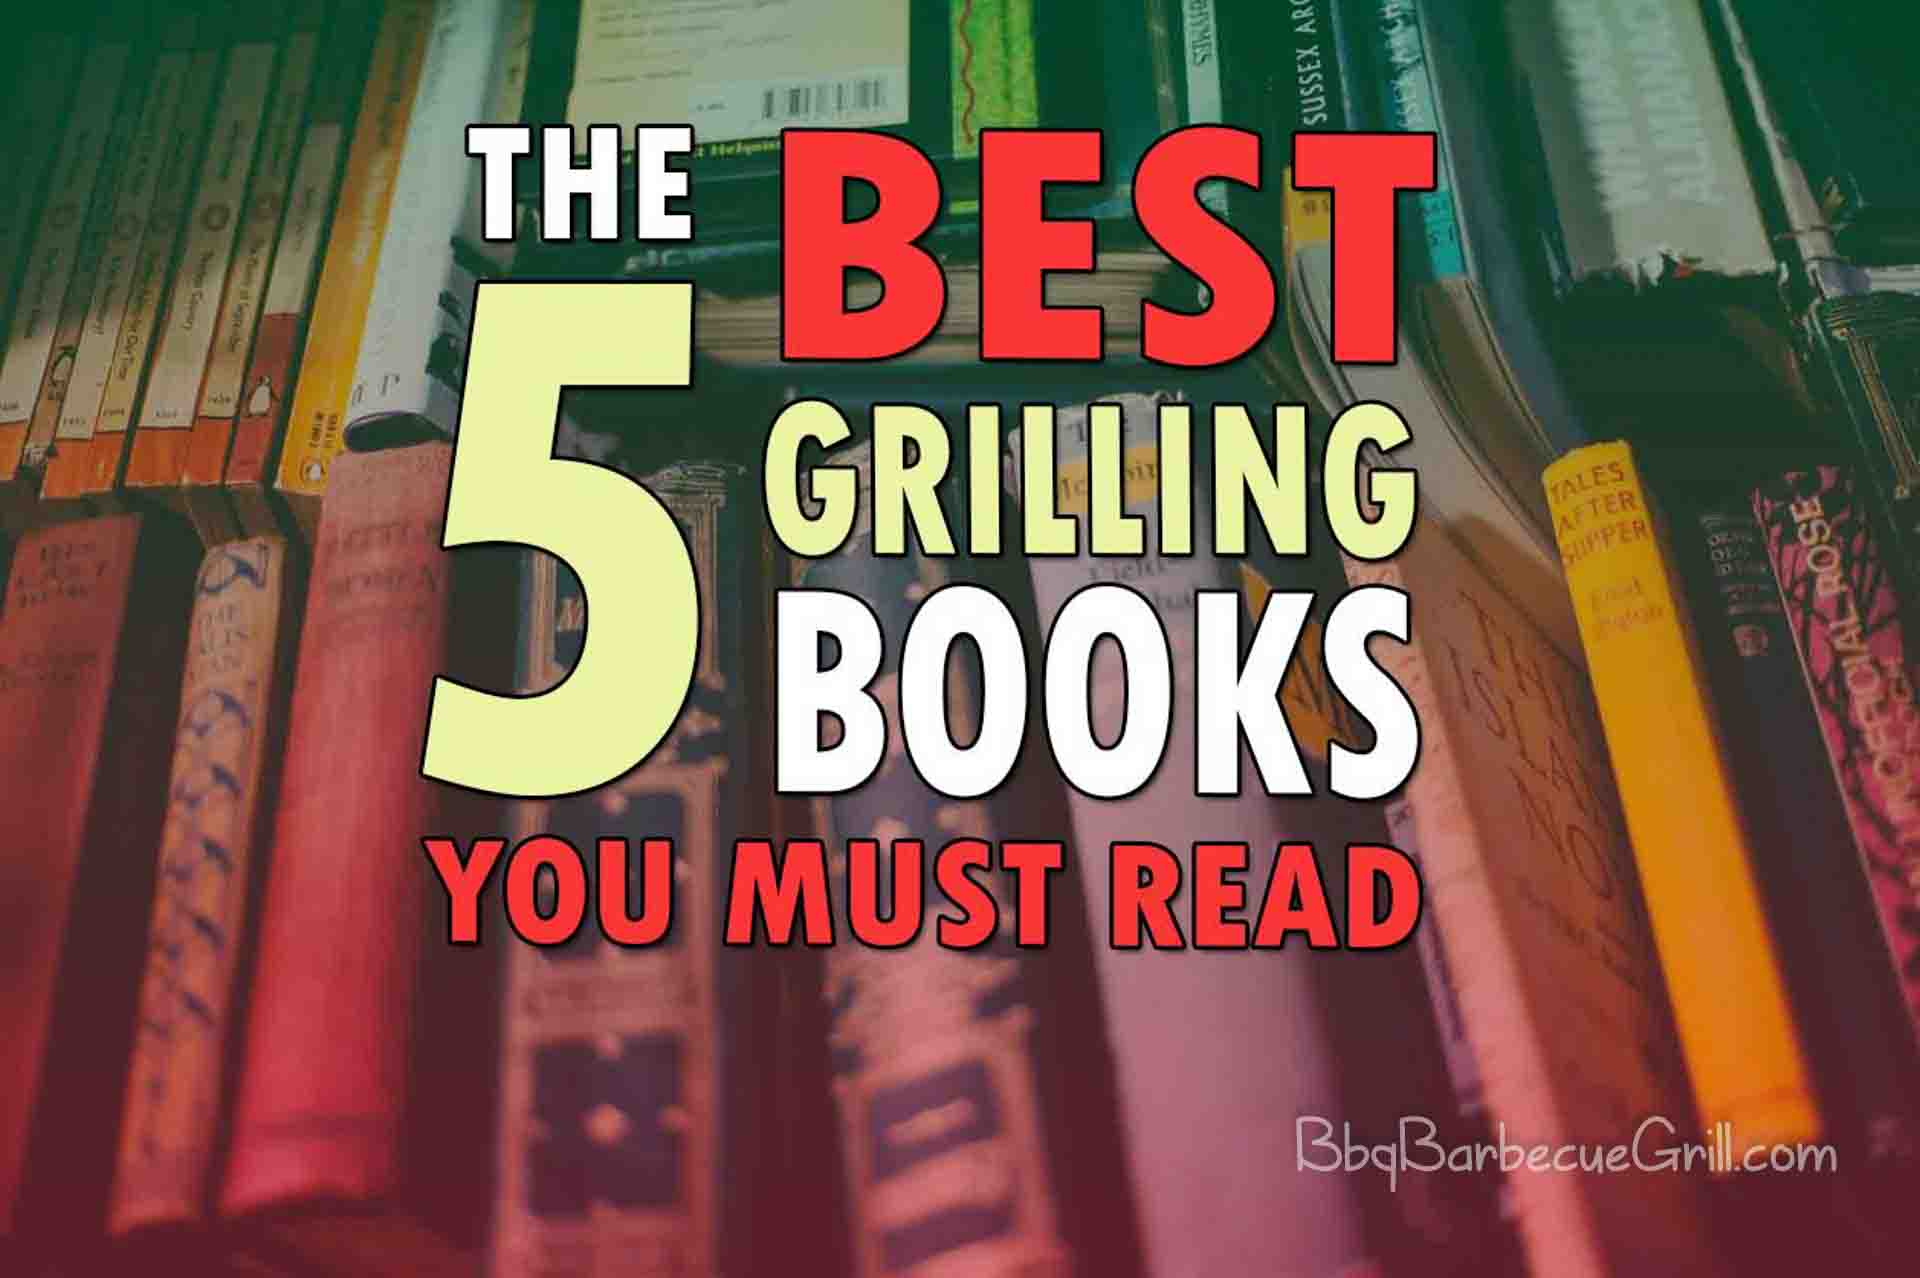 The 5 best grilling books